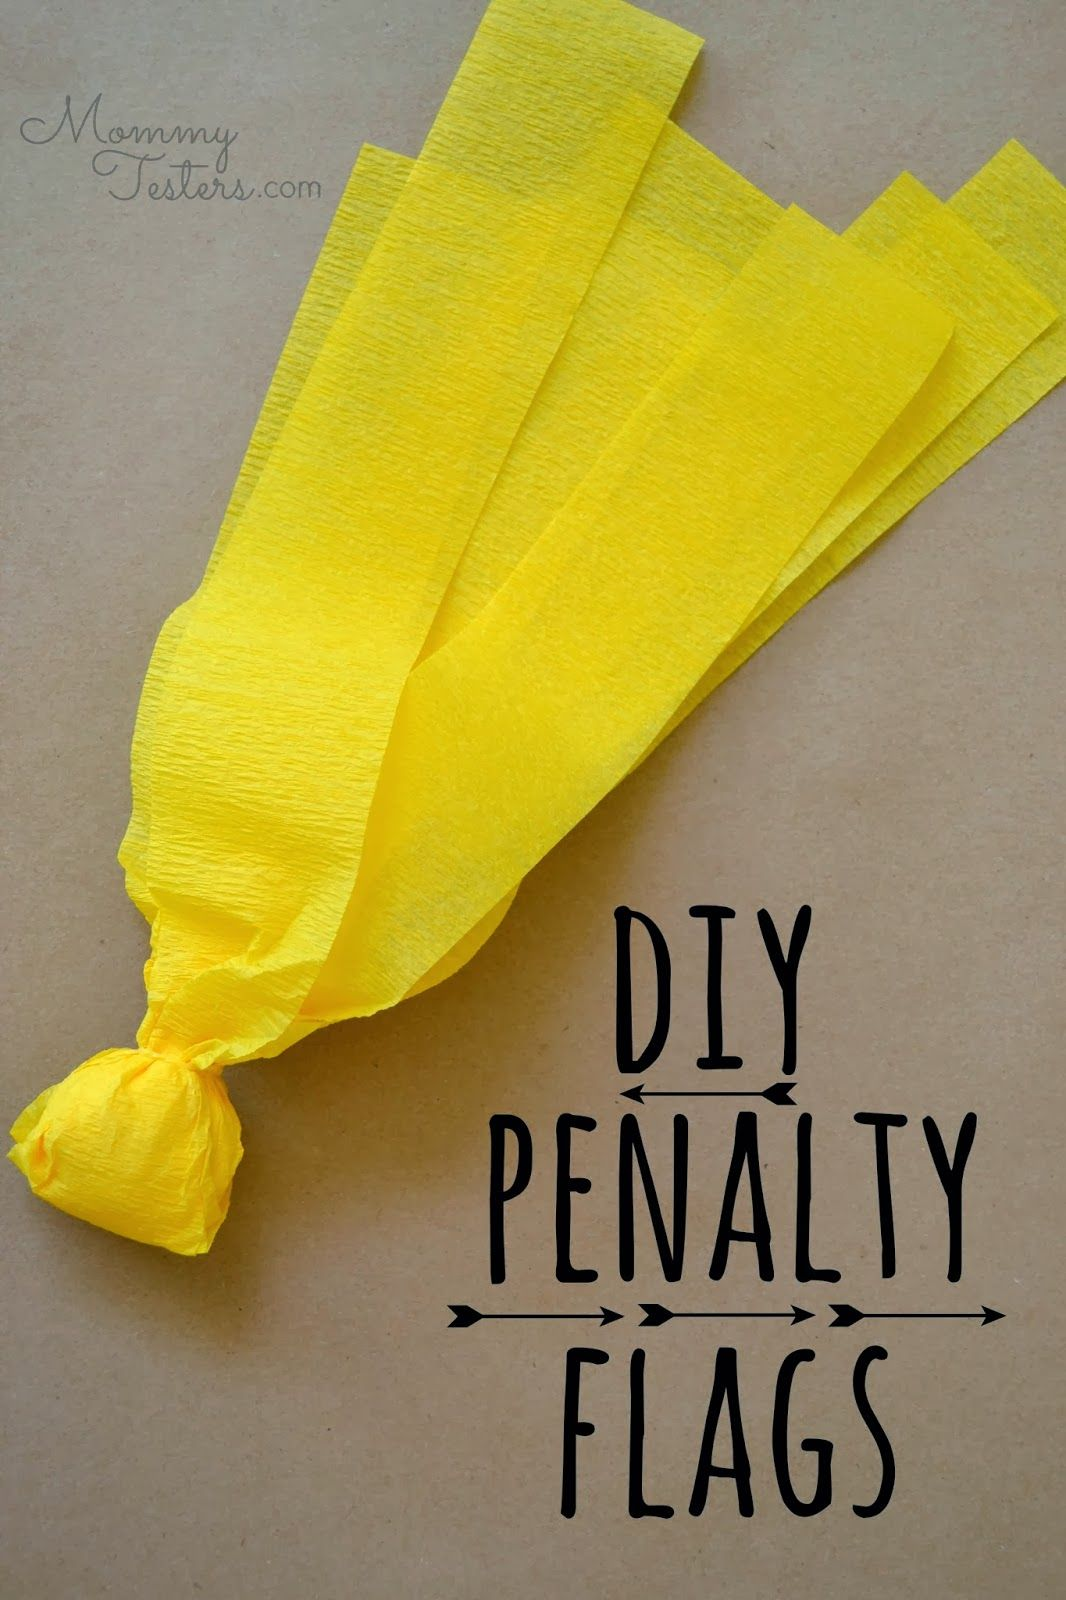 Pin By K B Carlton On Homemade Fun For Kids Superbowl Party Kids Sports Party Football Diy